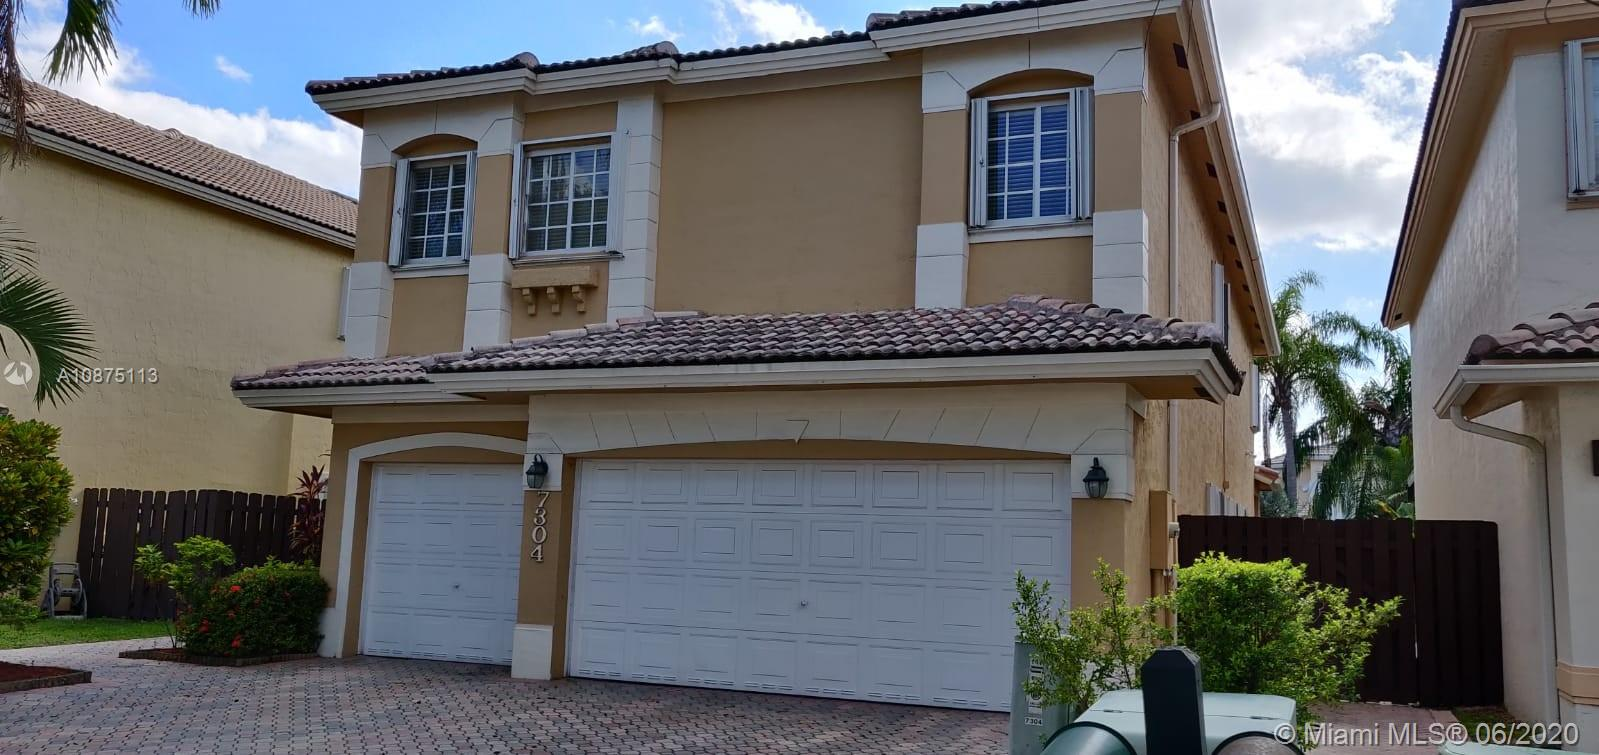 7304 NW 108th Ct  For Sale A10875113, FL